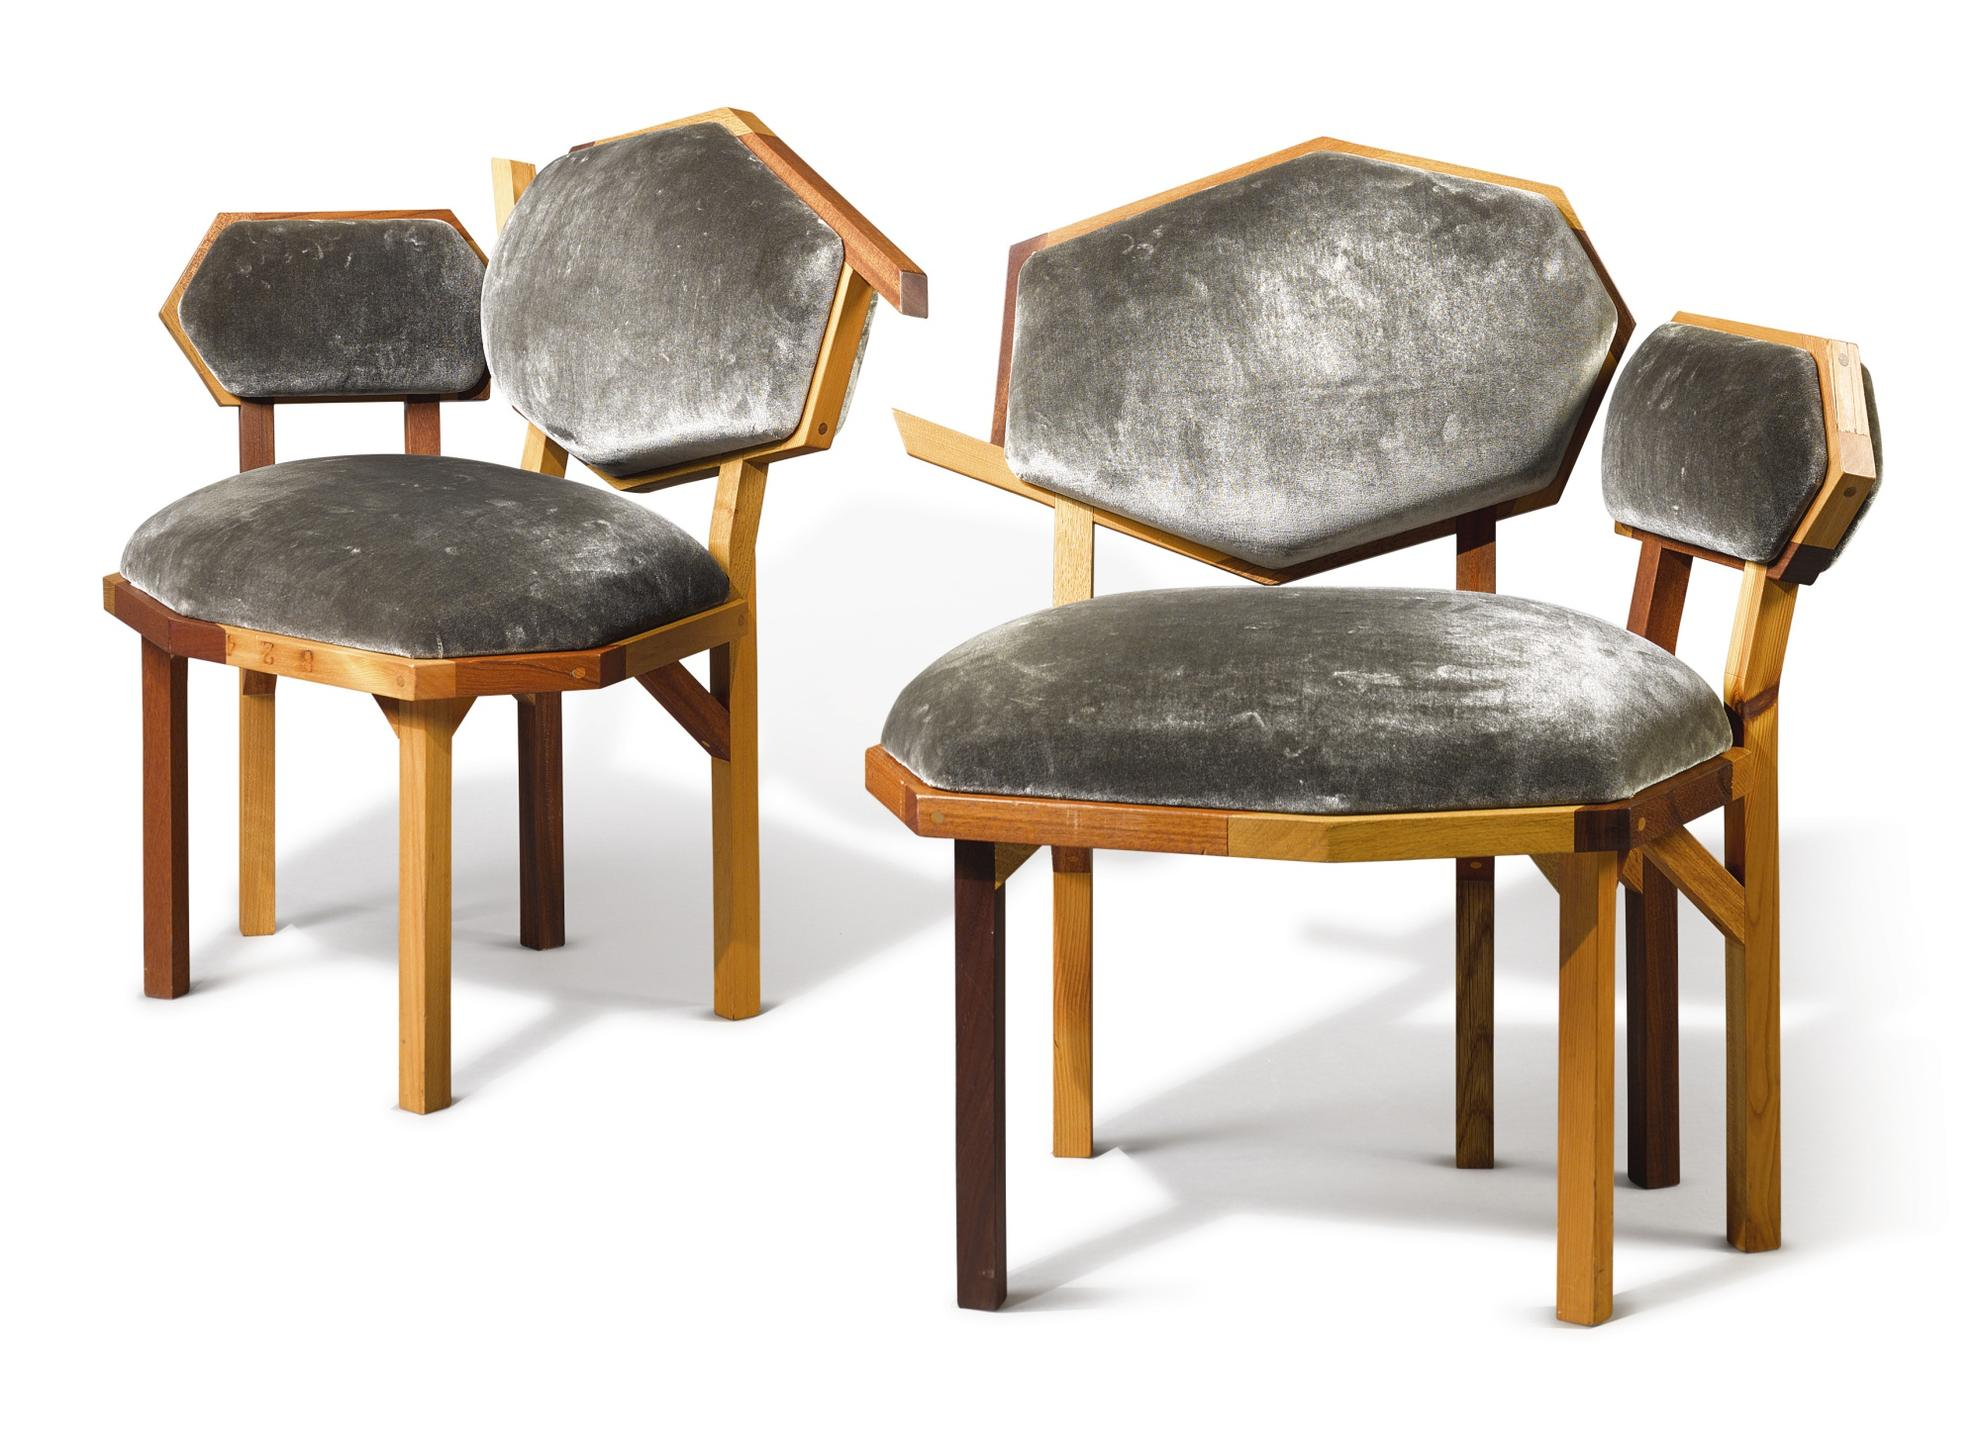 Martino Gamper - Two 'Rita' Chairs-2010